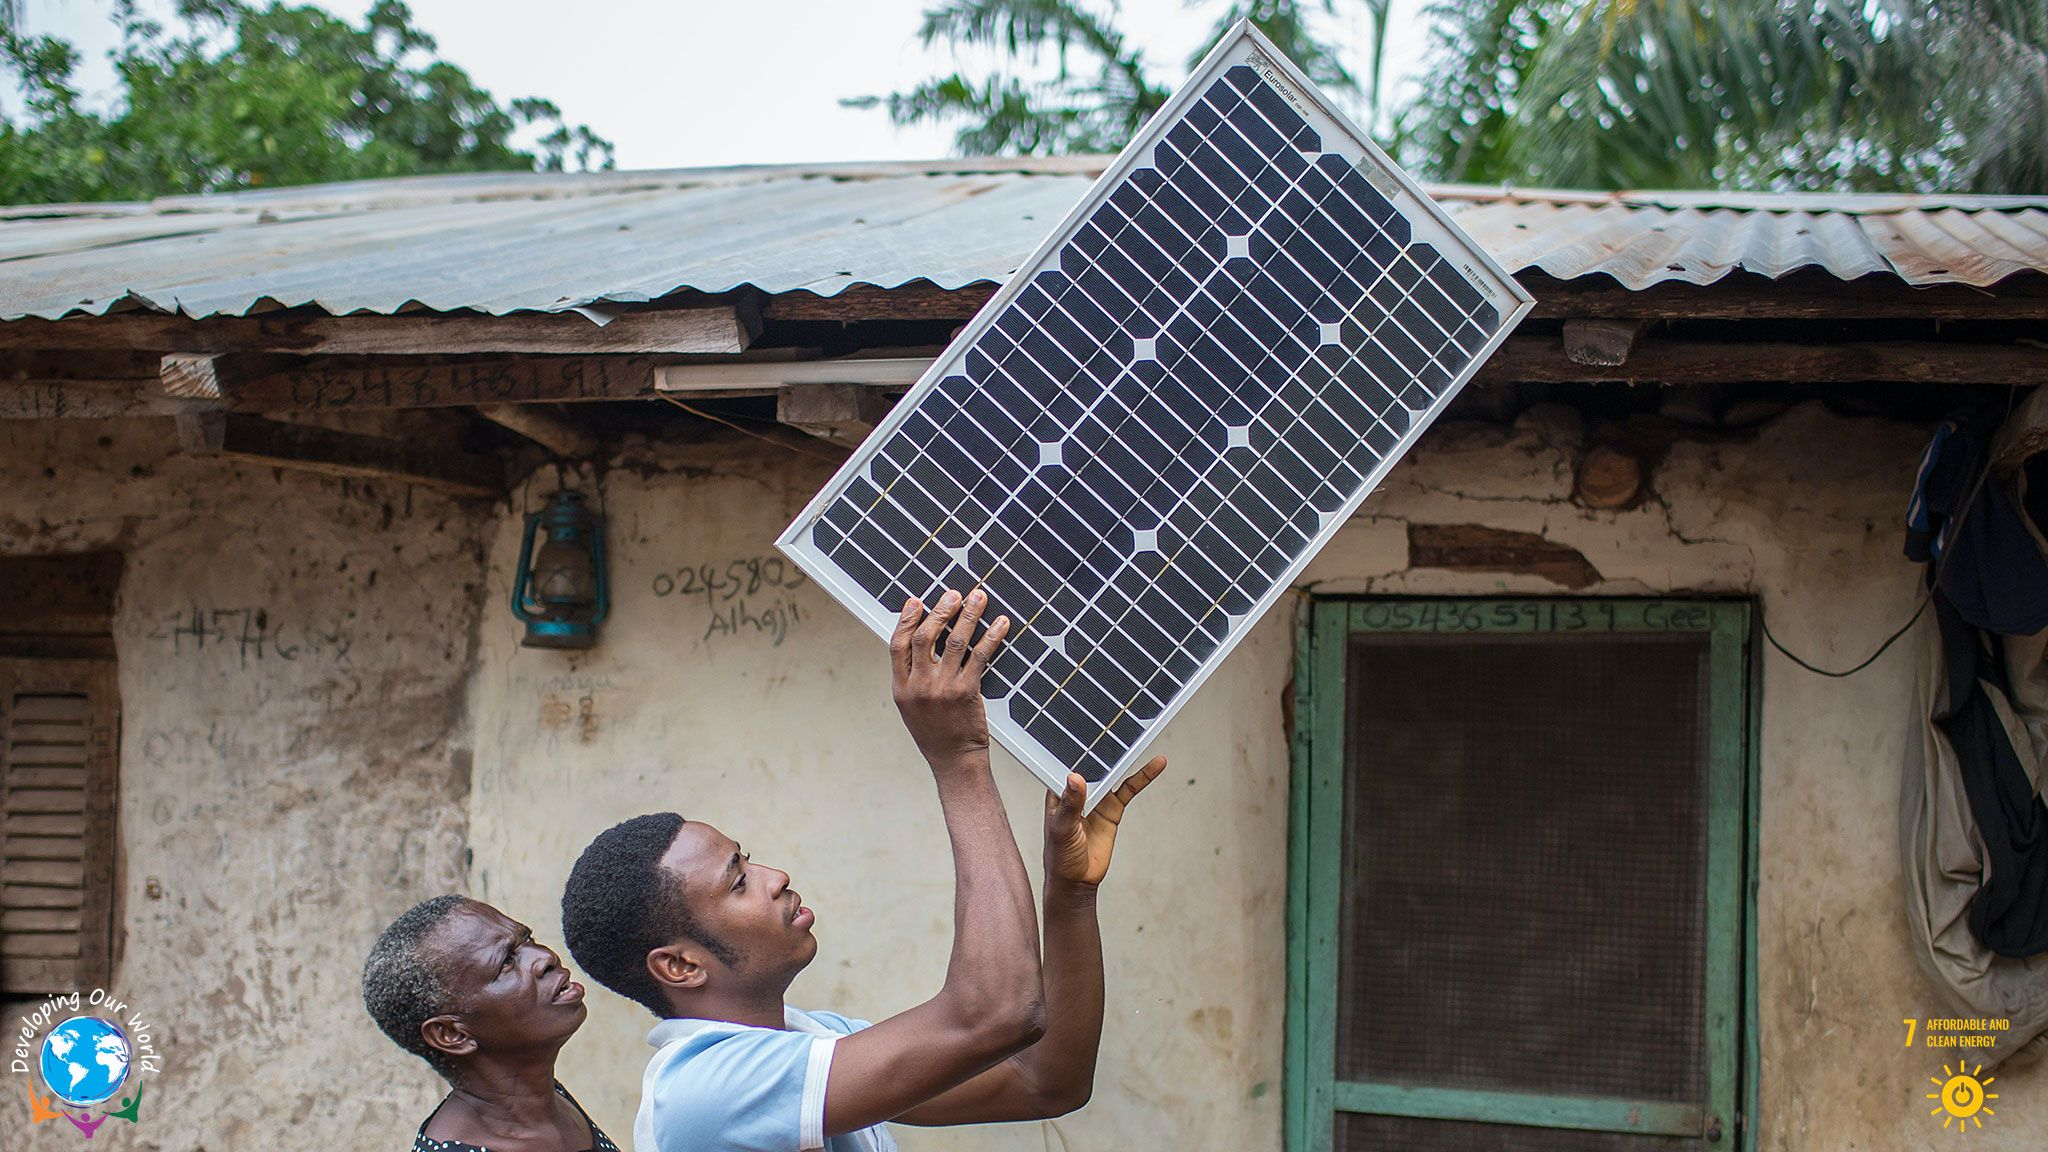 Sustainable Development Goal 7: Affordable and Clean Energy